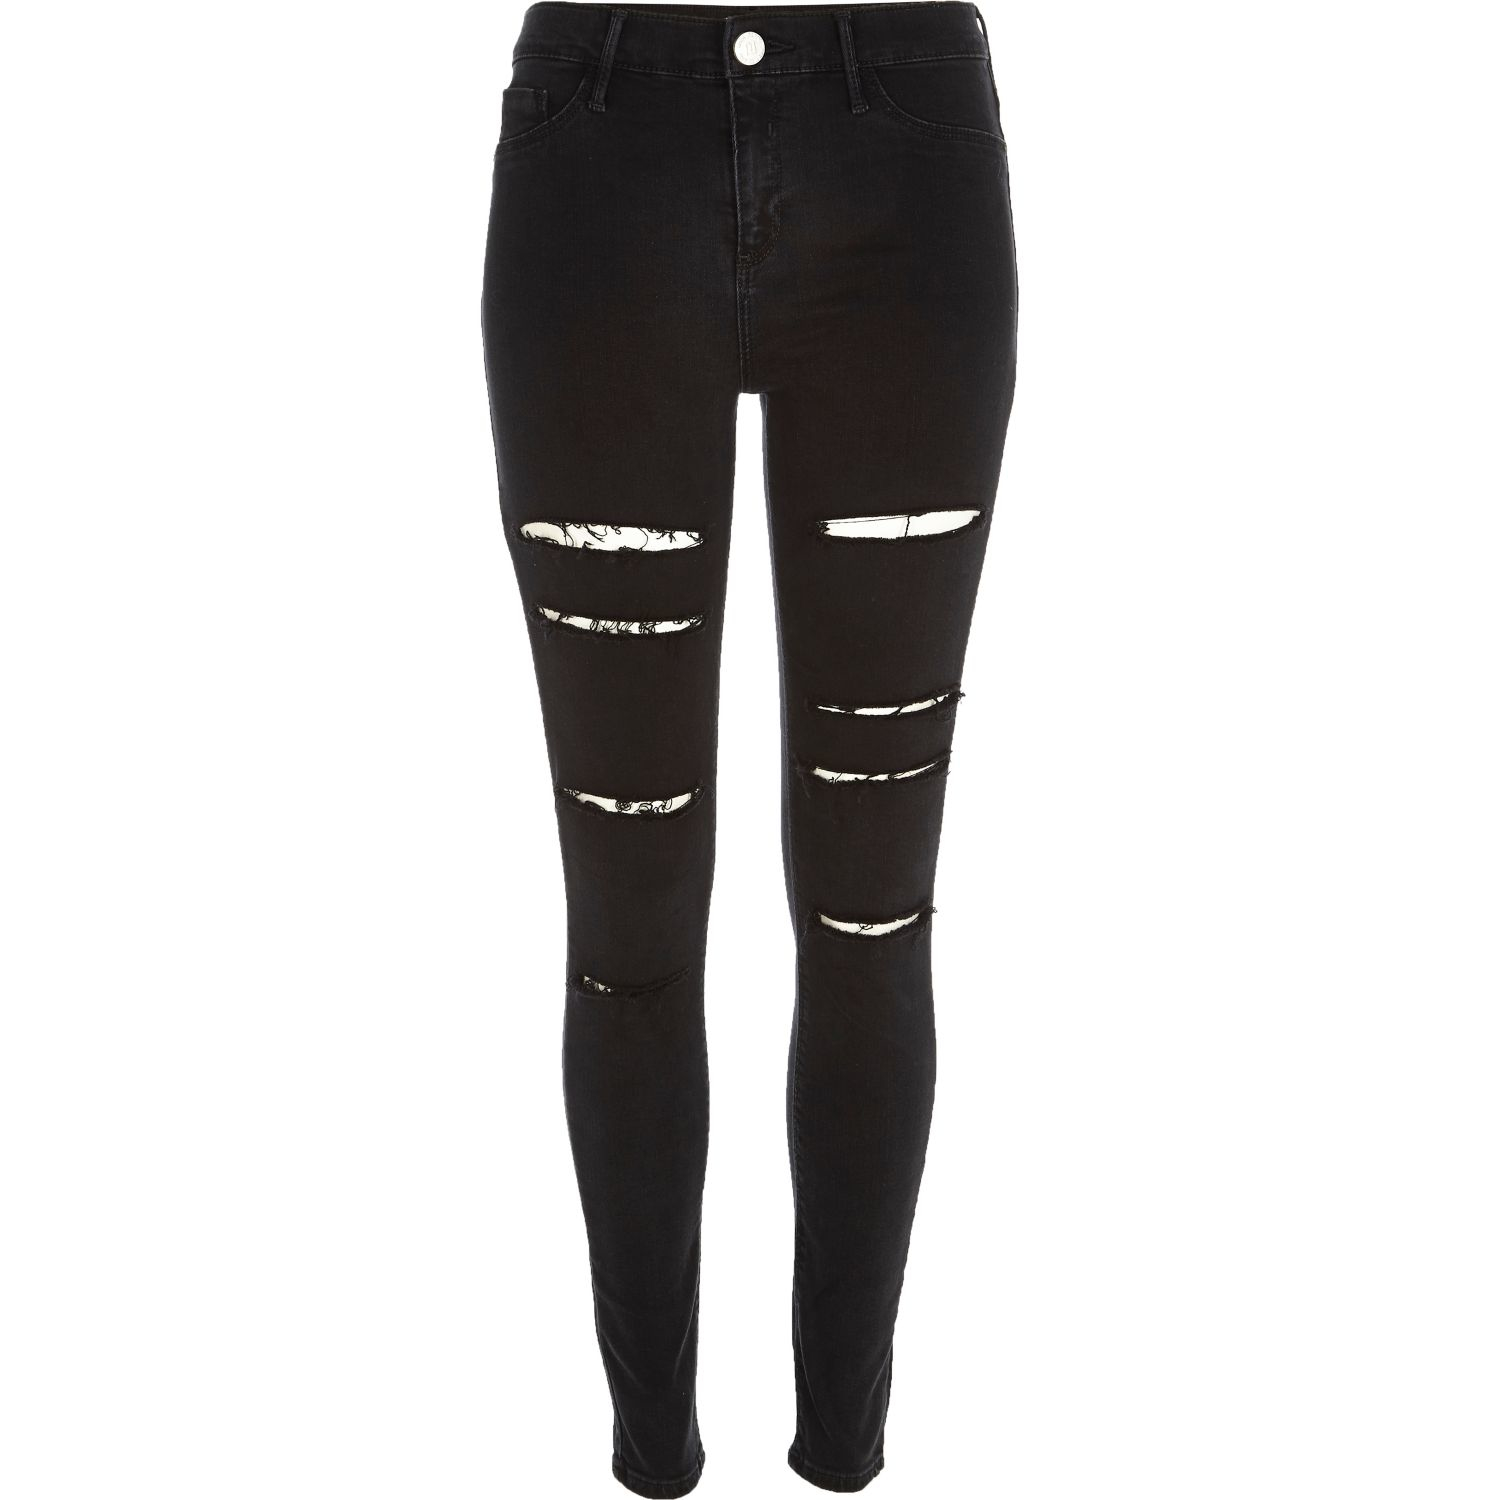 efa0949894038 River Island Black Ripped Molly Jeggings in Black - Lyst